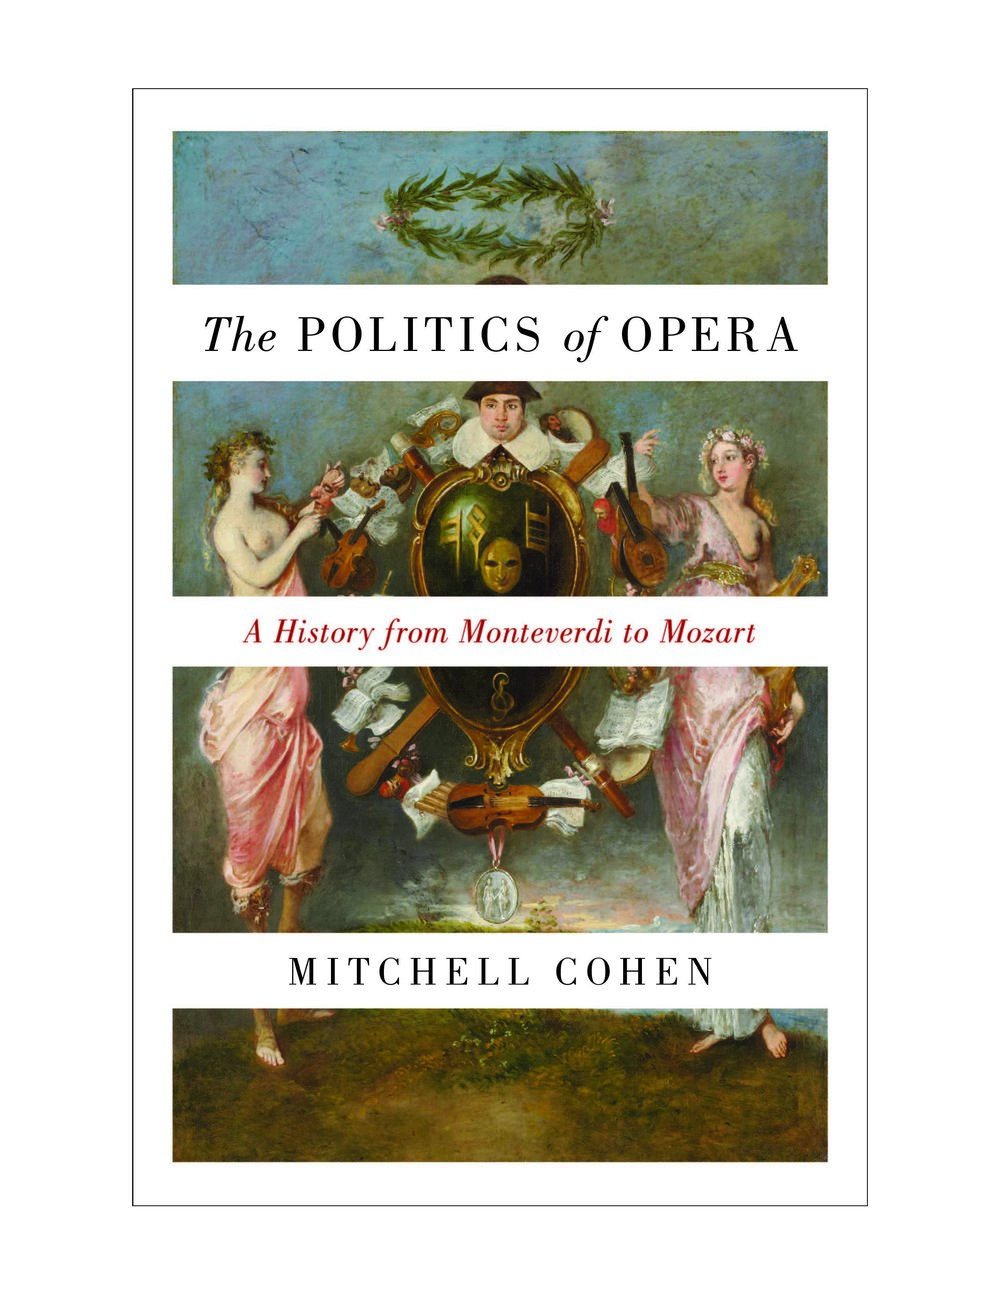 In his new book  The Politics of Opera,      Mitchell Cohen   takes readers on a fascinating journey into the entwined development of opera and politics, from the Renaissance through the turn of the nineteenth century. What political backdrops have shaped opera? How has opera conveyed the political ideas of its times? Delving into European history and thought and an array of music by such greats as Lully, Rameau, and Mozart, Mitchell Cohen reveals how politics—through story lines, symbols, harmonies, and musical motifs—has played an operatic role both robust and sotto voce.    Join Cohen and respondents Katha Pollitt and Mark Anderson for a conversation   about the intersections of music, the state, and politics.     Mitchell Cohen  is professor of political science at Baruch College and the CUNY Graduate Center and editor emeritus of  Dissent.      Katha Pollitt  is a columnist for  The Nation      Mark Anderson  is Professor of German at Columbia University